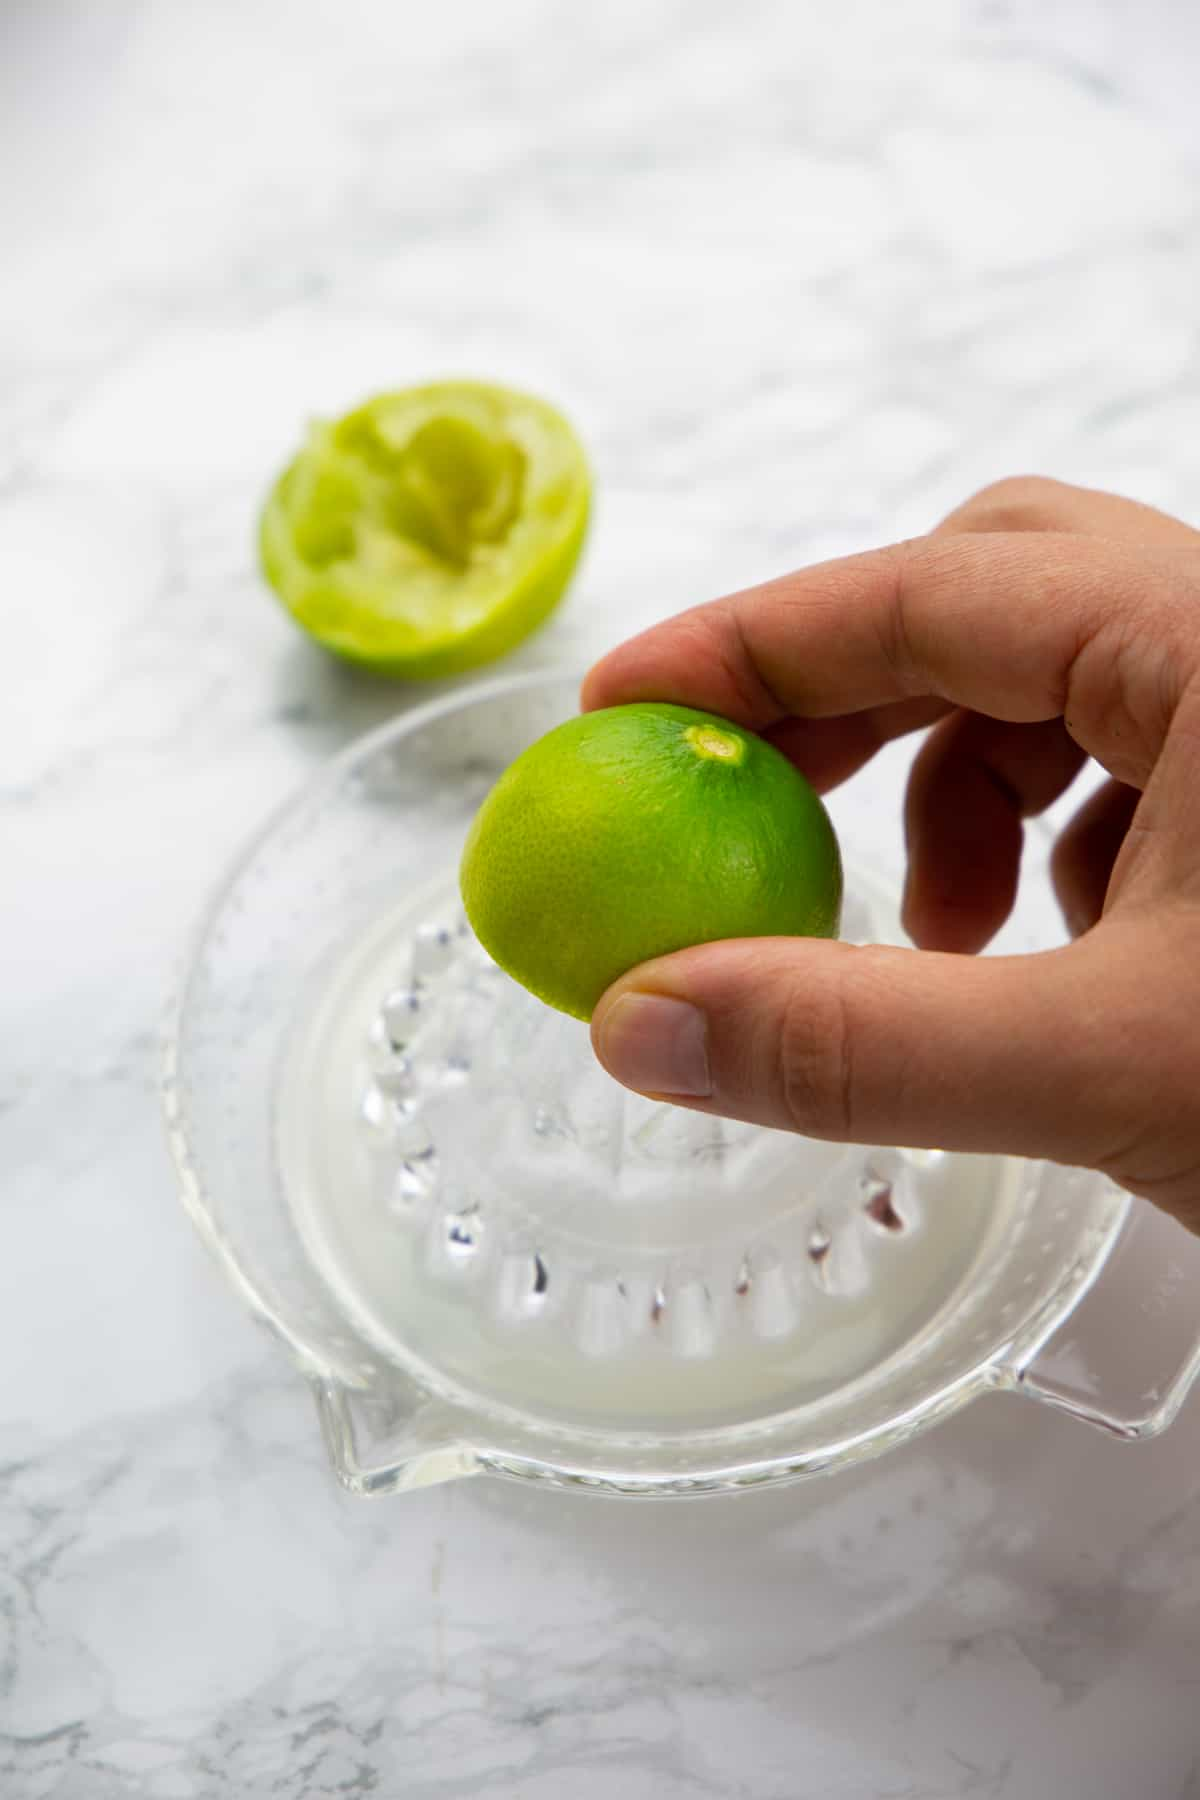 a hand juicing a lime with a lemon squeezer made of glass